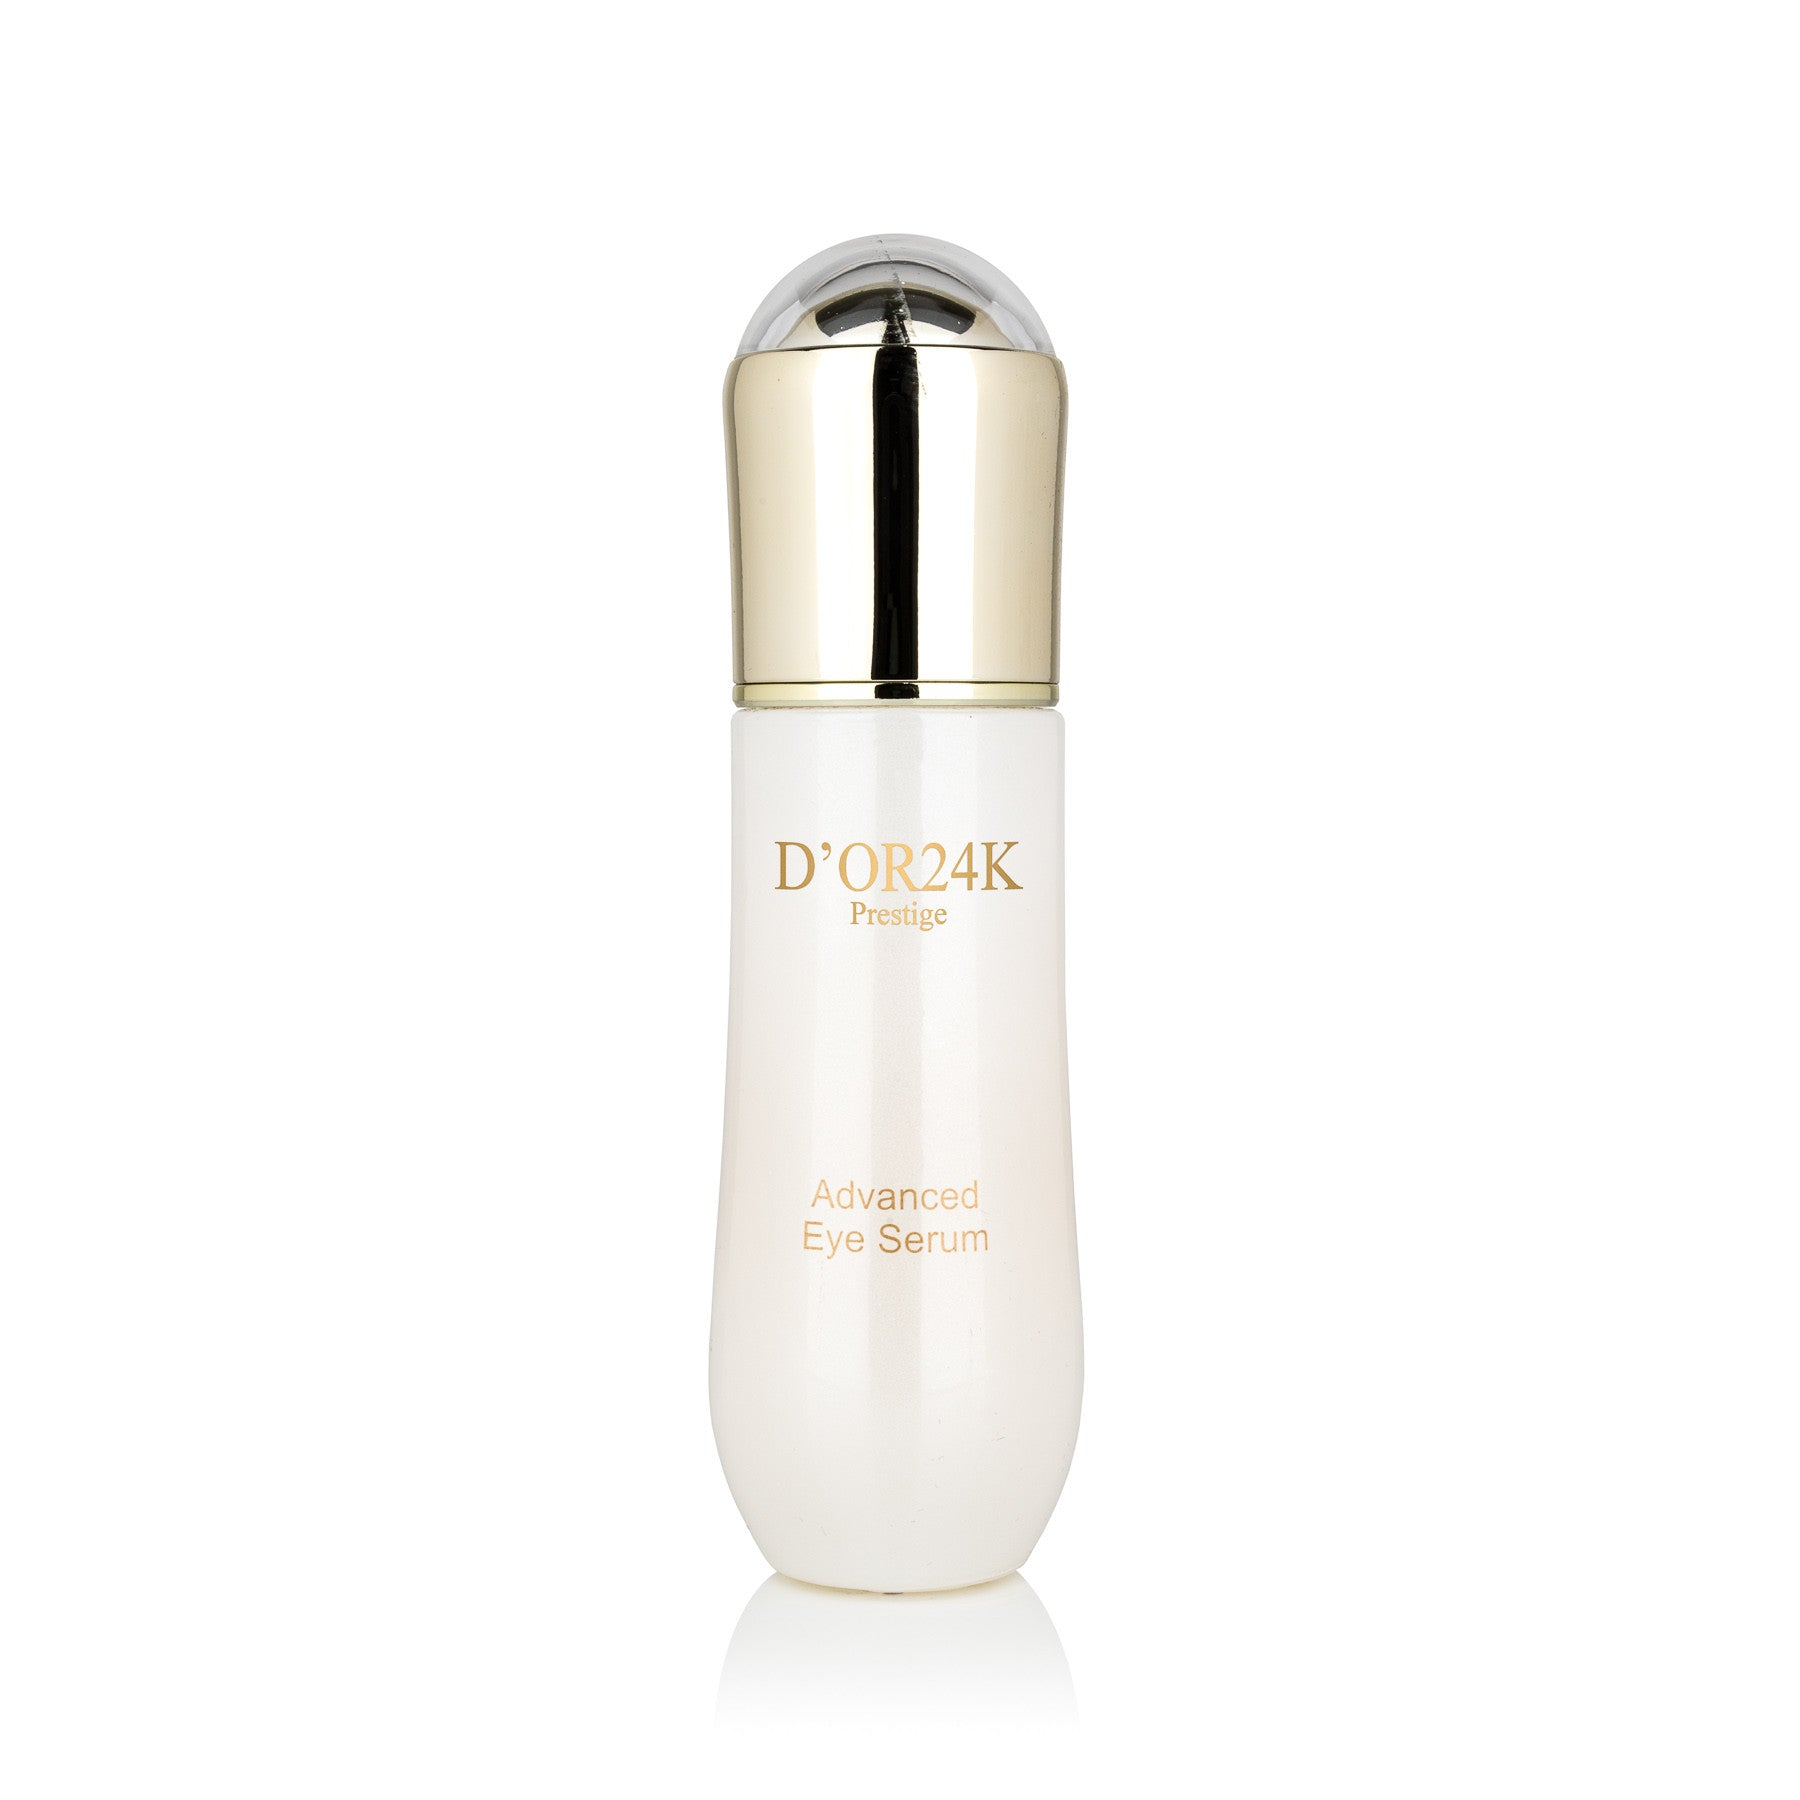 D'OR24K Eye Serum